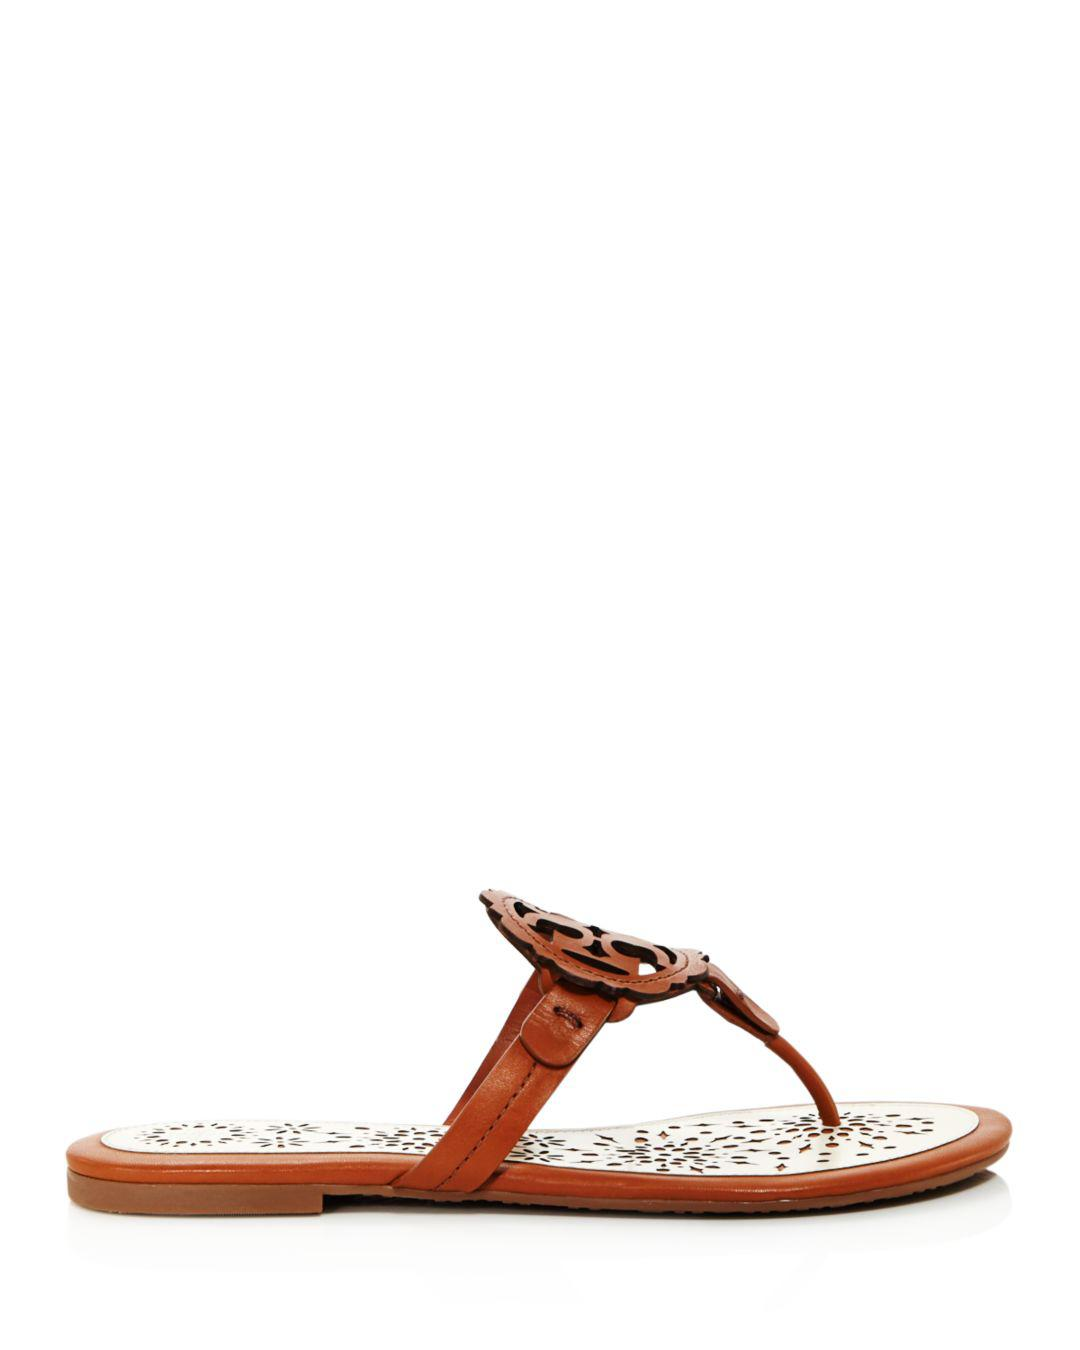 fc05b7eac36c Lyst - Tory Burch Women s Miller Scallop Leather Thong Sandals in Brown